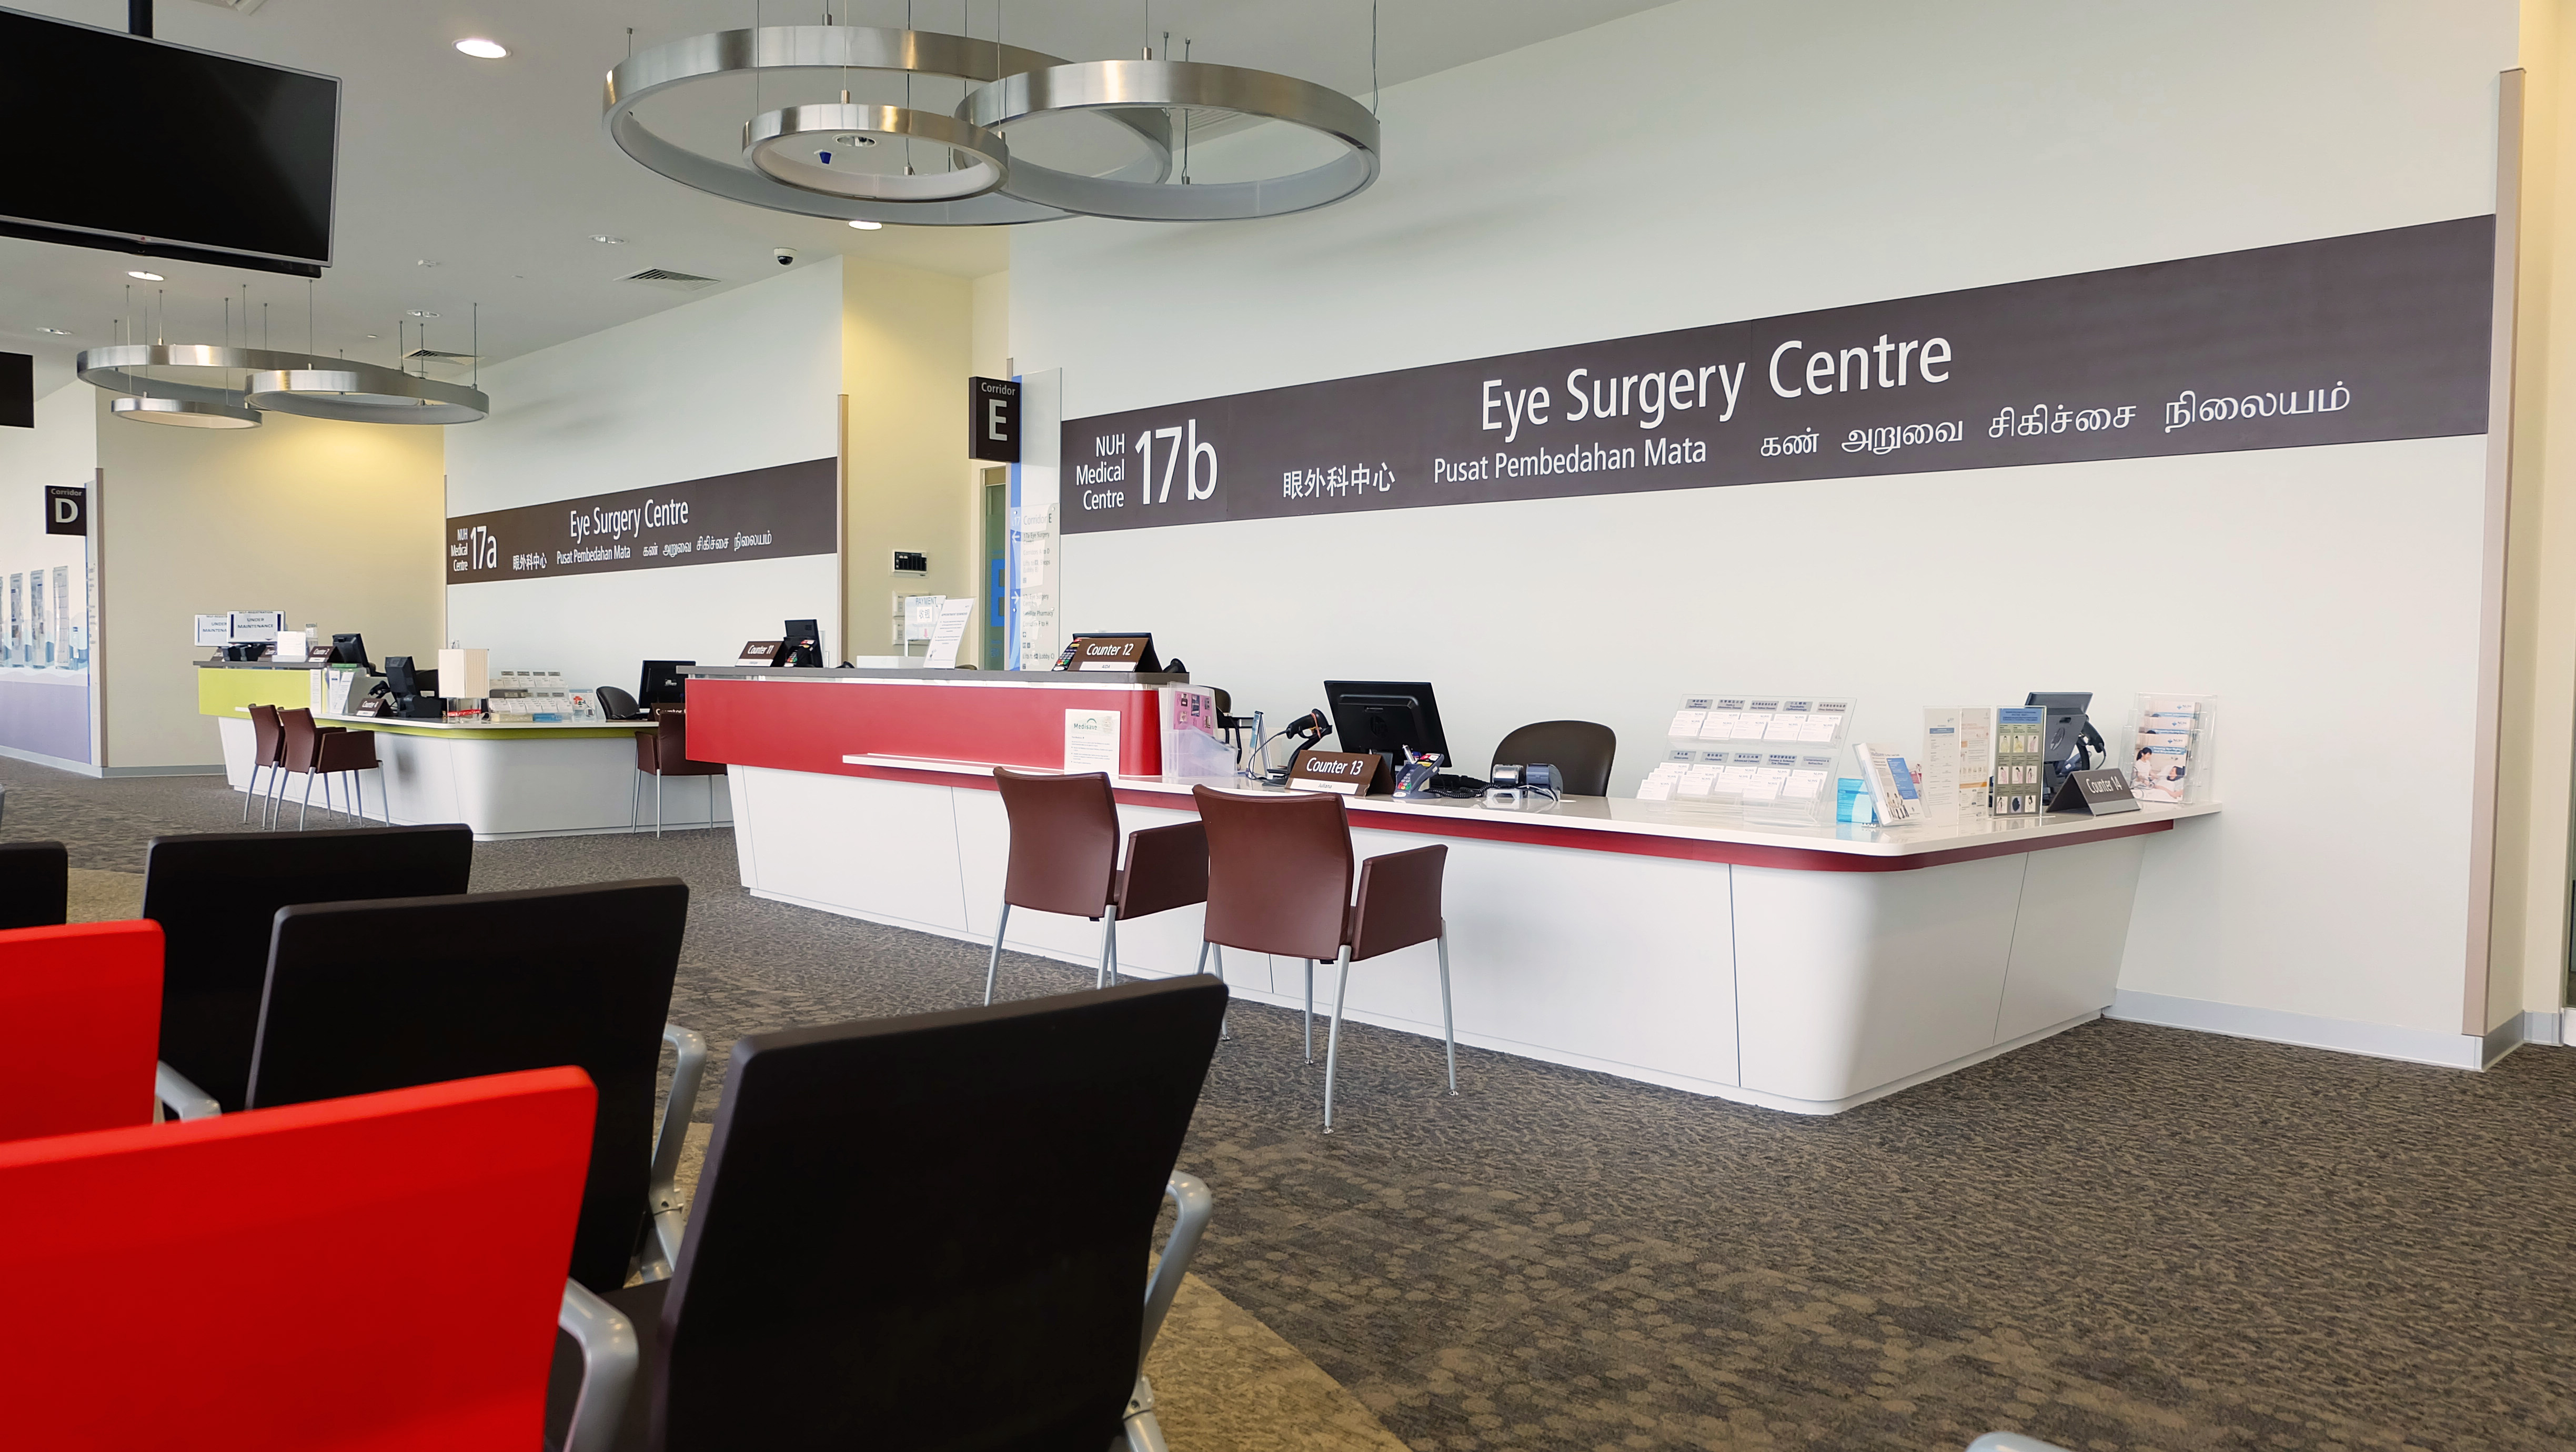 NUH Eye Surgery Centre Interior.jpg